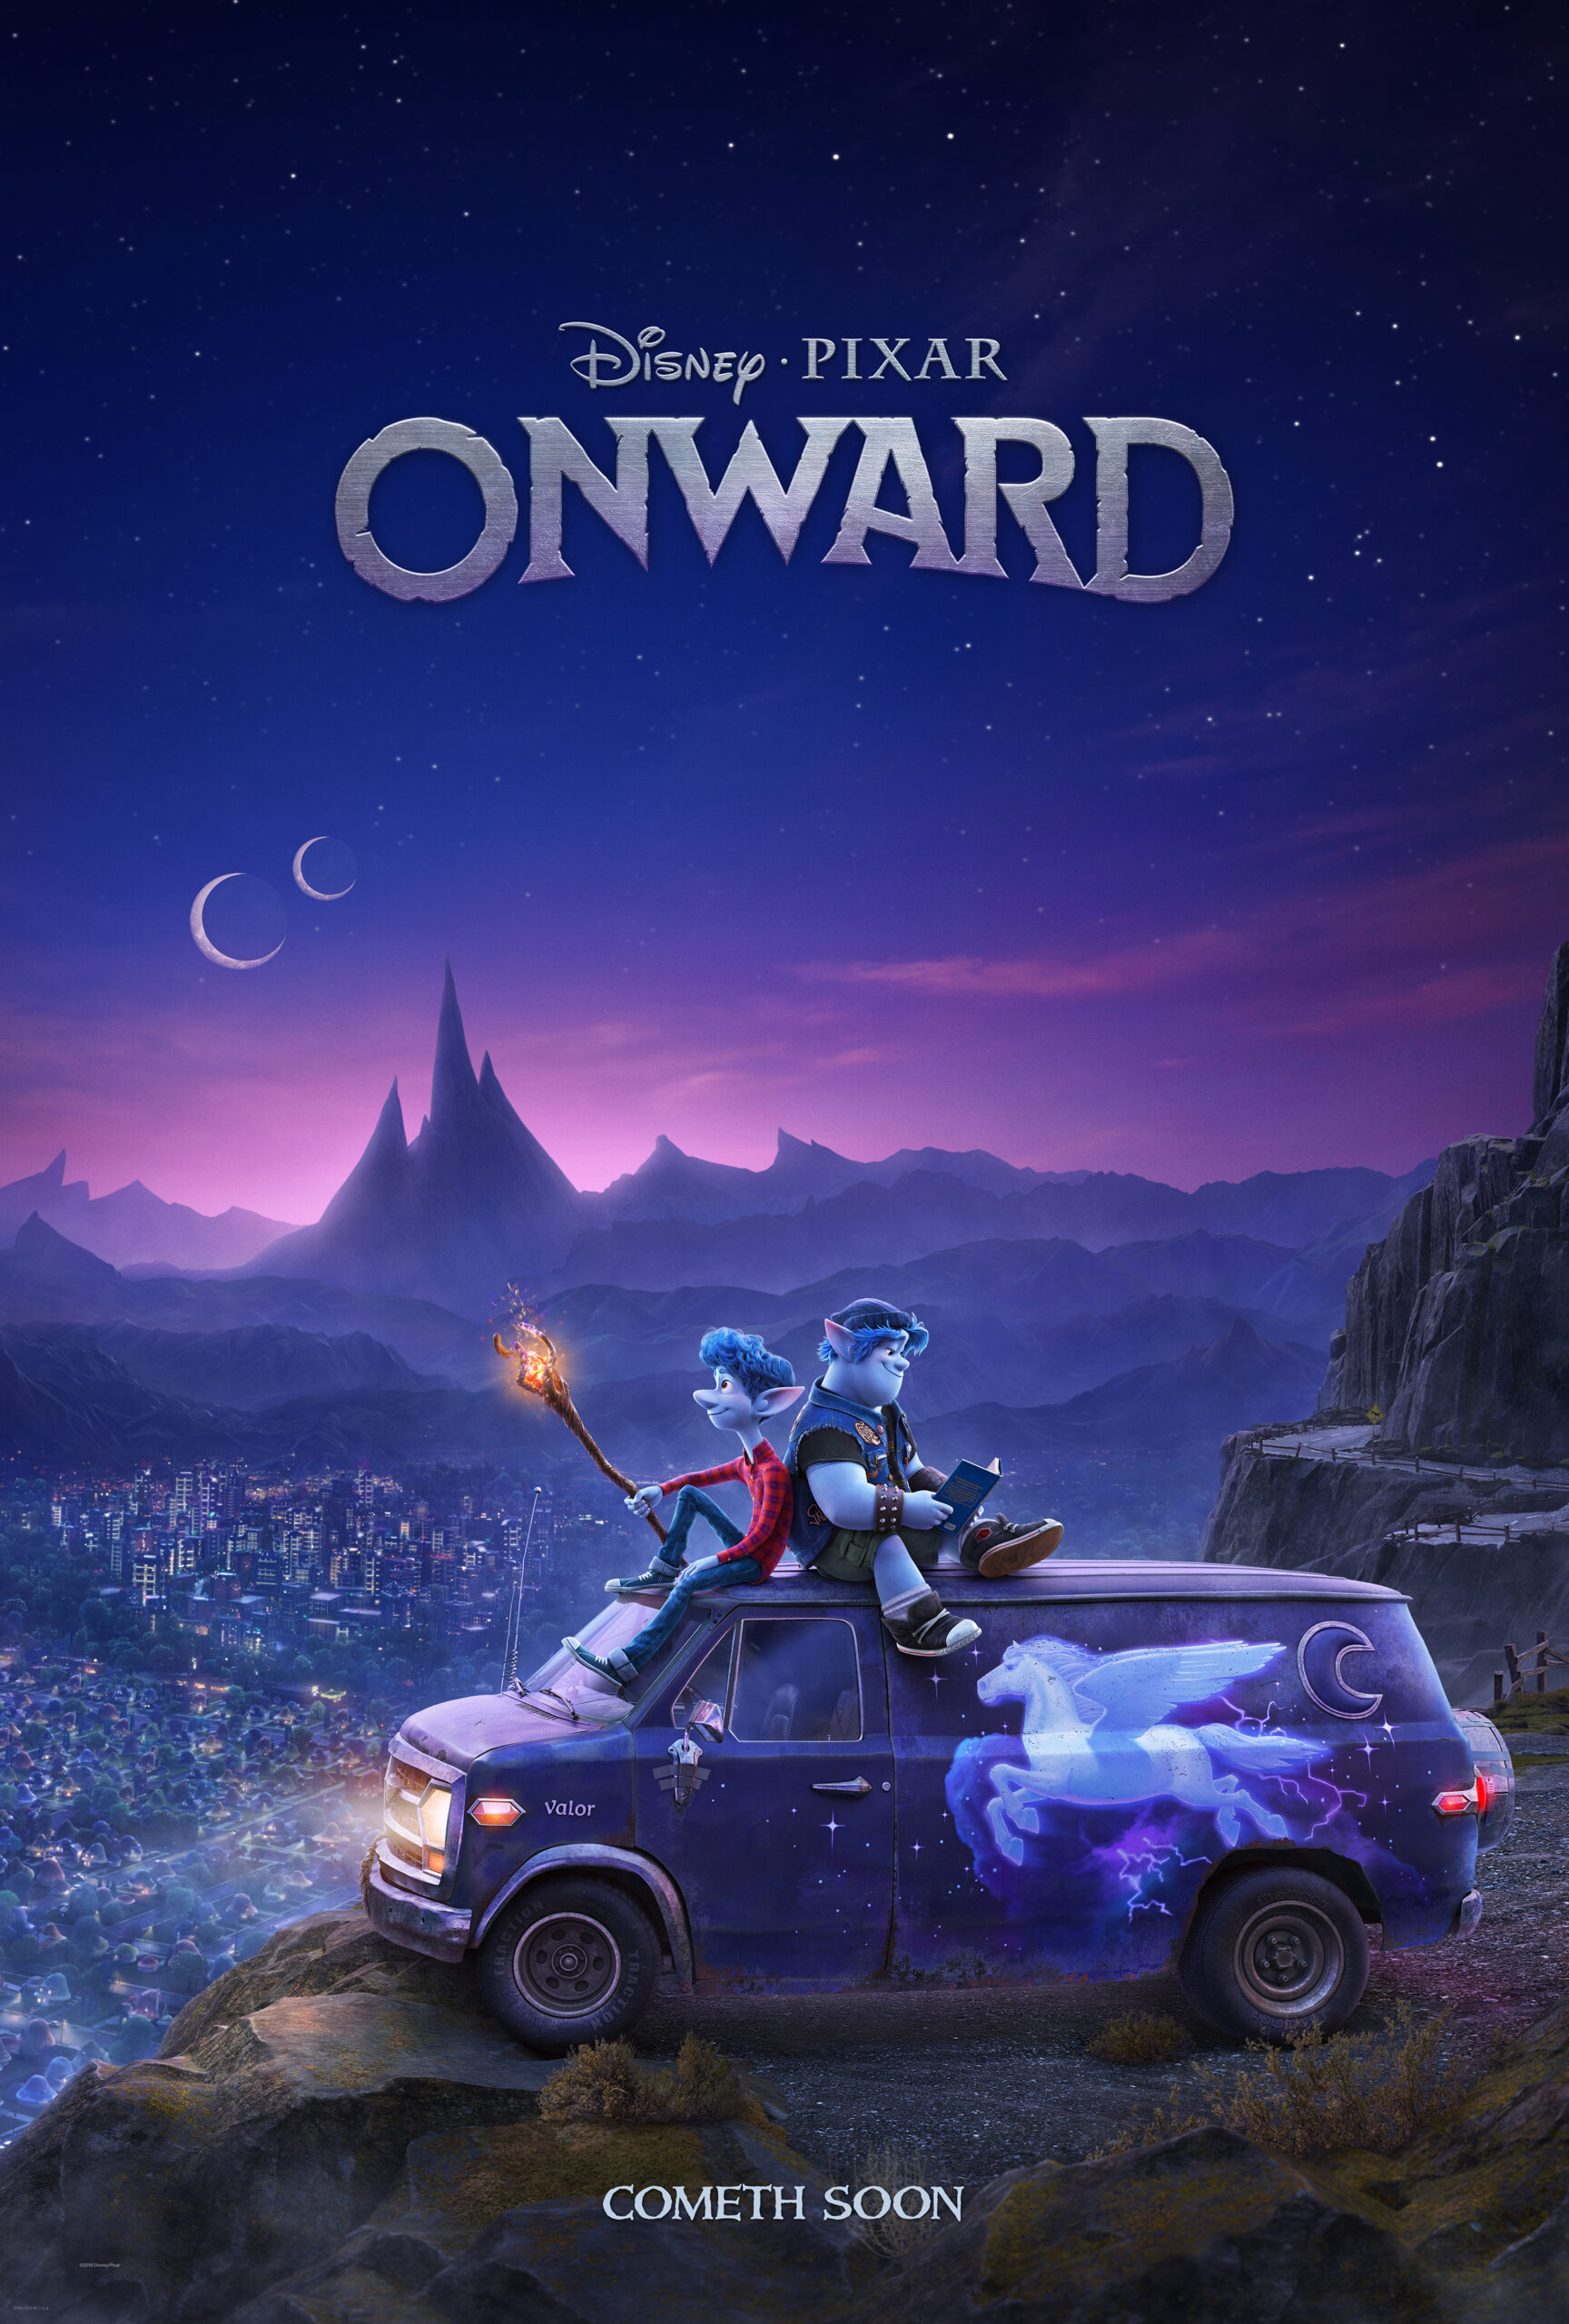 Gearing up to see Pixar's Onward? Here is what every parent needs to know!